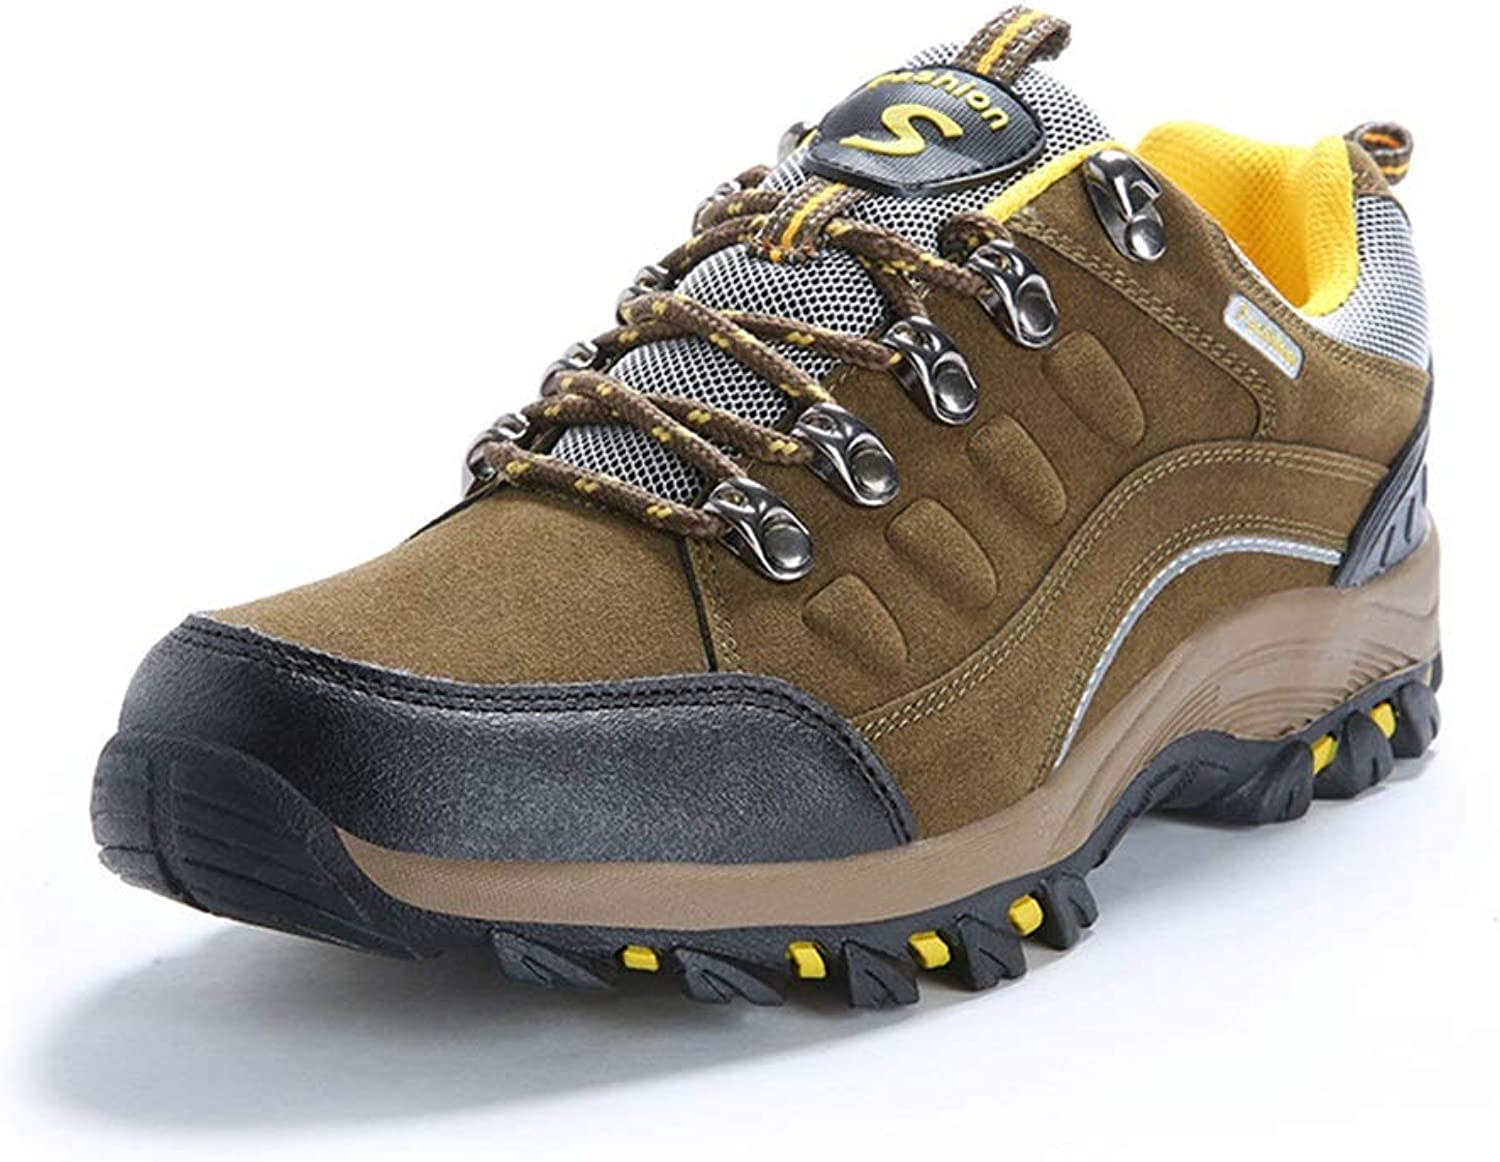 He-yanjing Women's Outdoor Hiking shoes, Autumn and Winter The Couple Hiking shoes Wear-Resistant Shock Absorbers for Men and Women Outdoor shoes Men's Casual Walking shoes